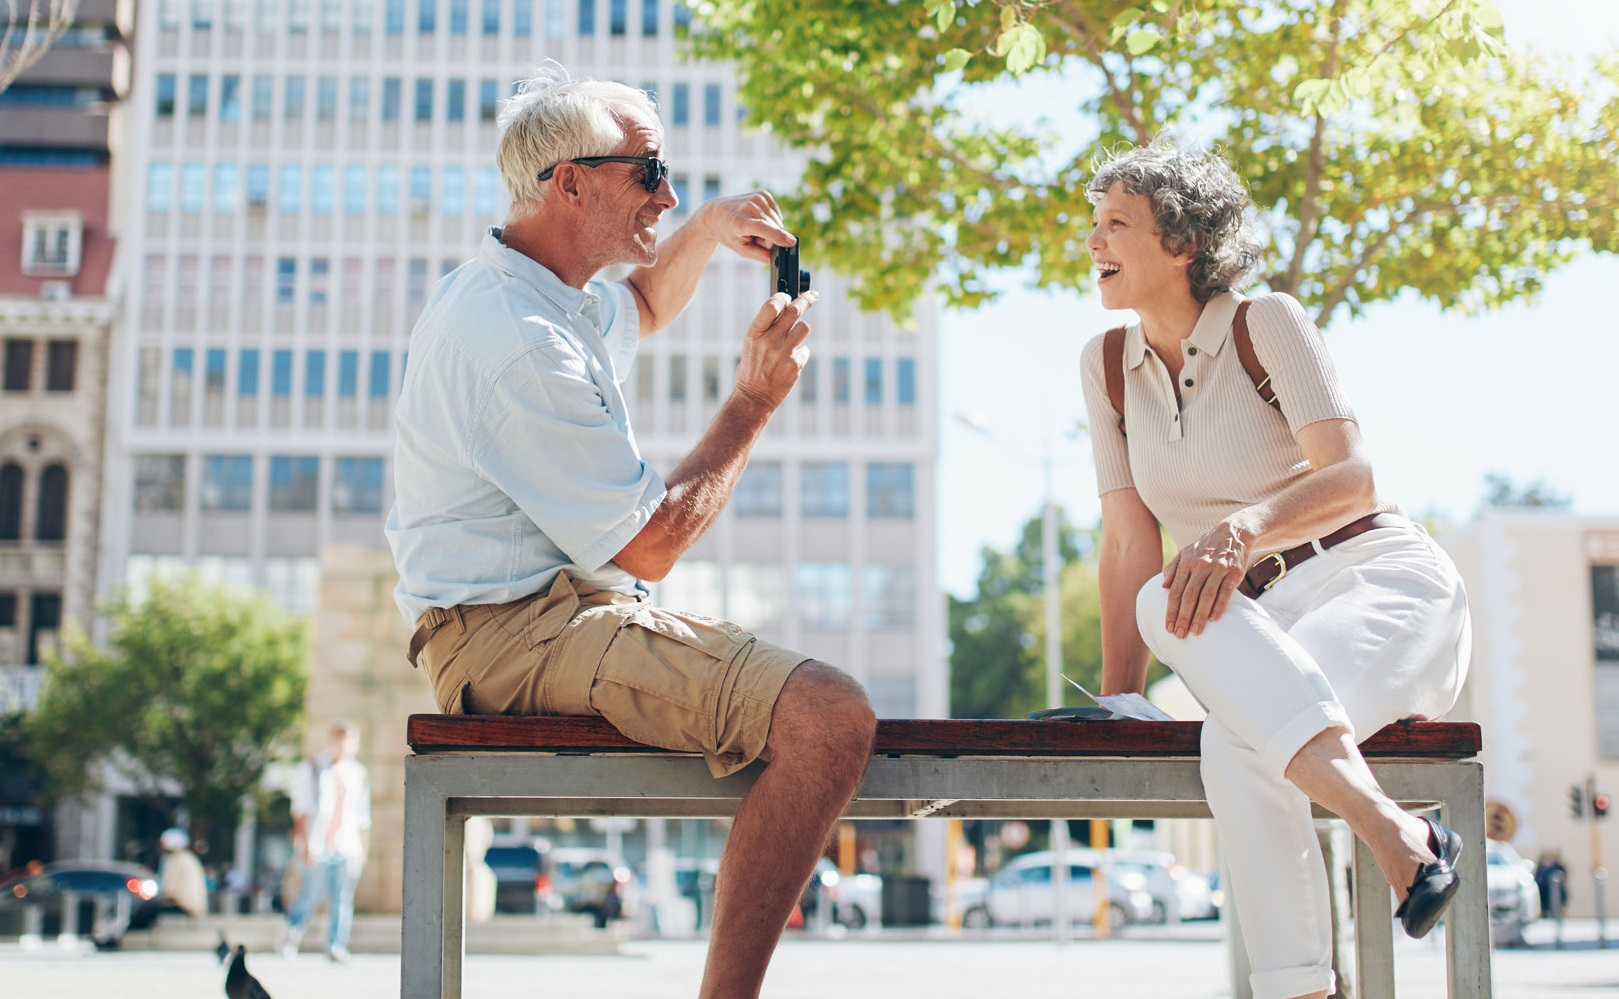 Photo of Best 10 Countries to Retire Overseas on a Budget